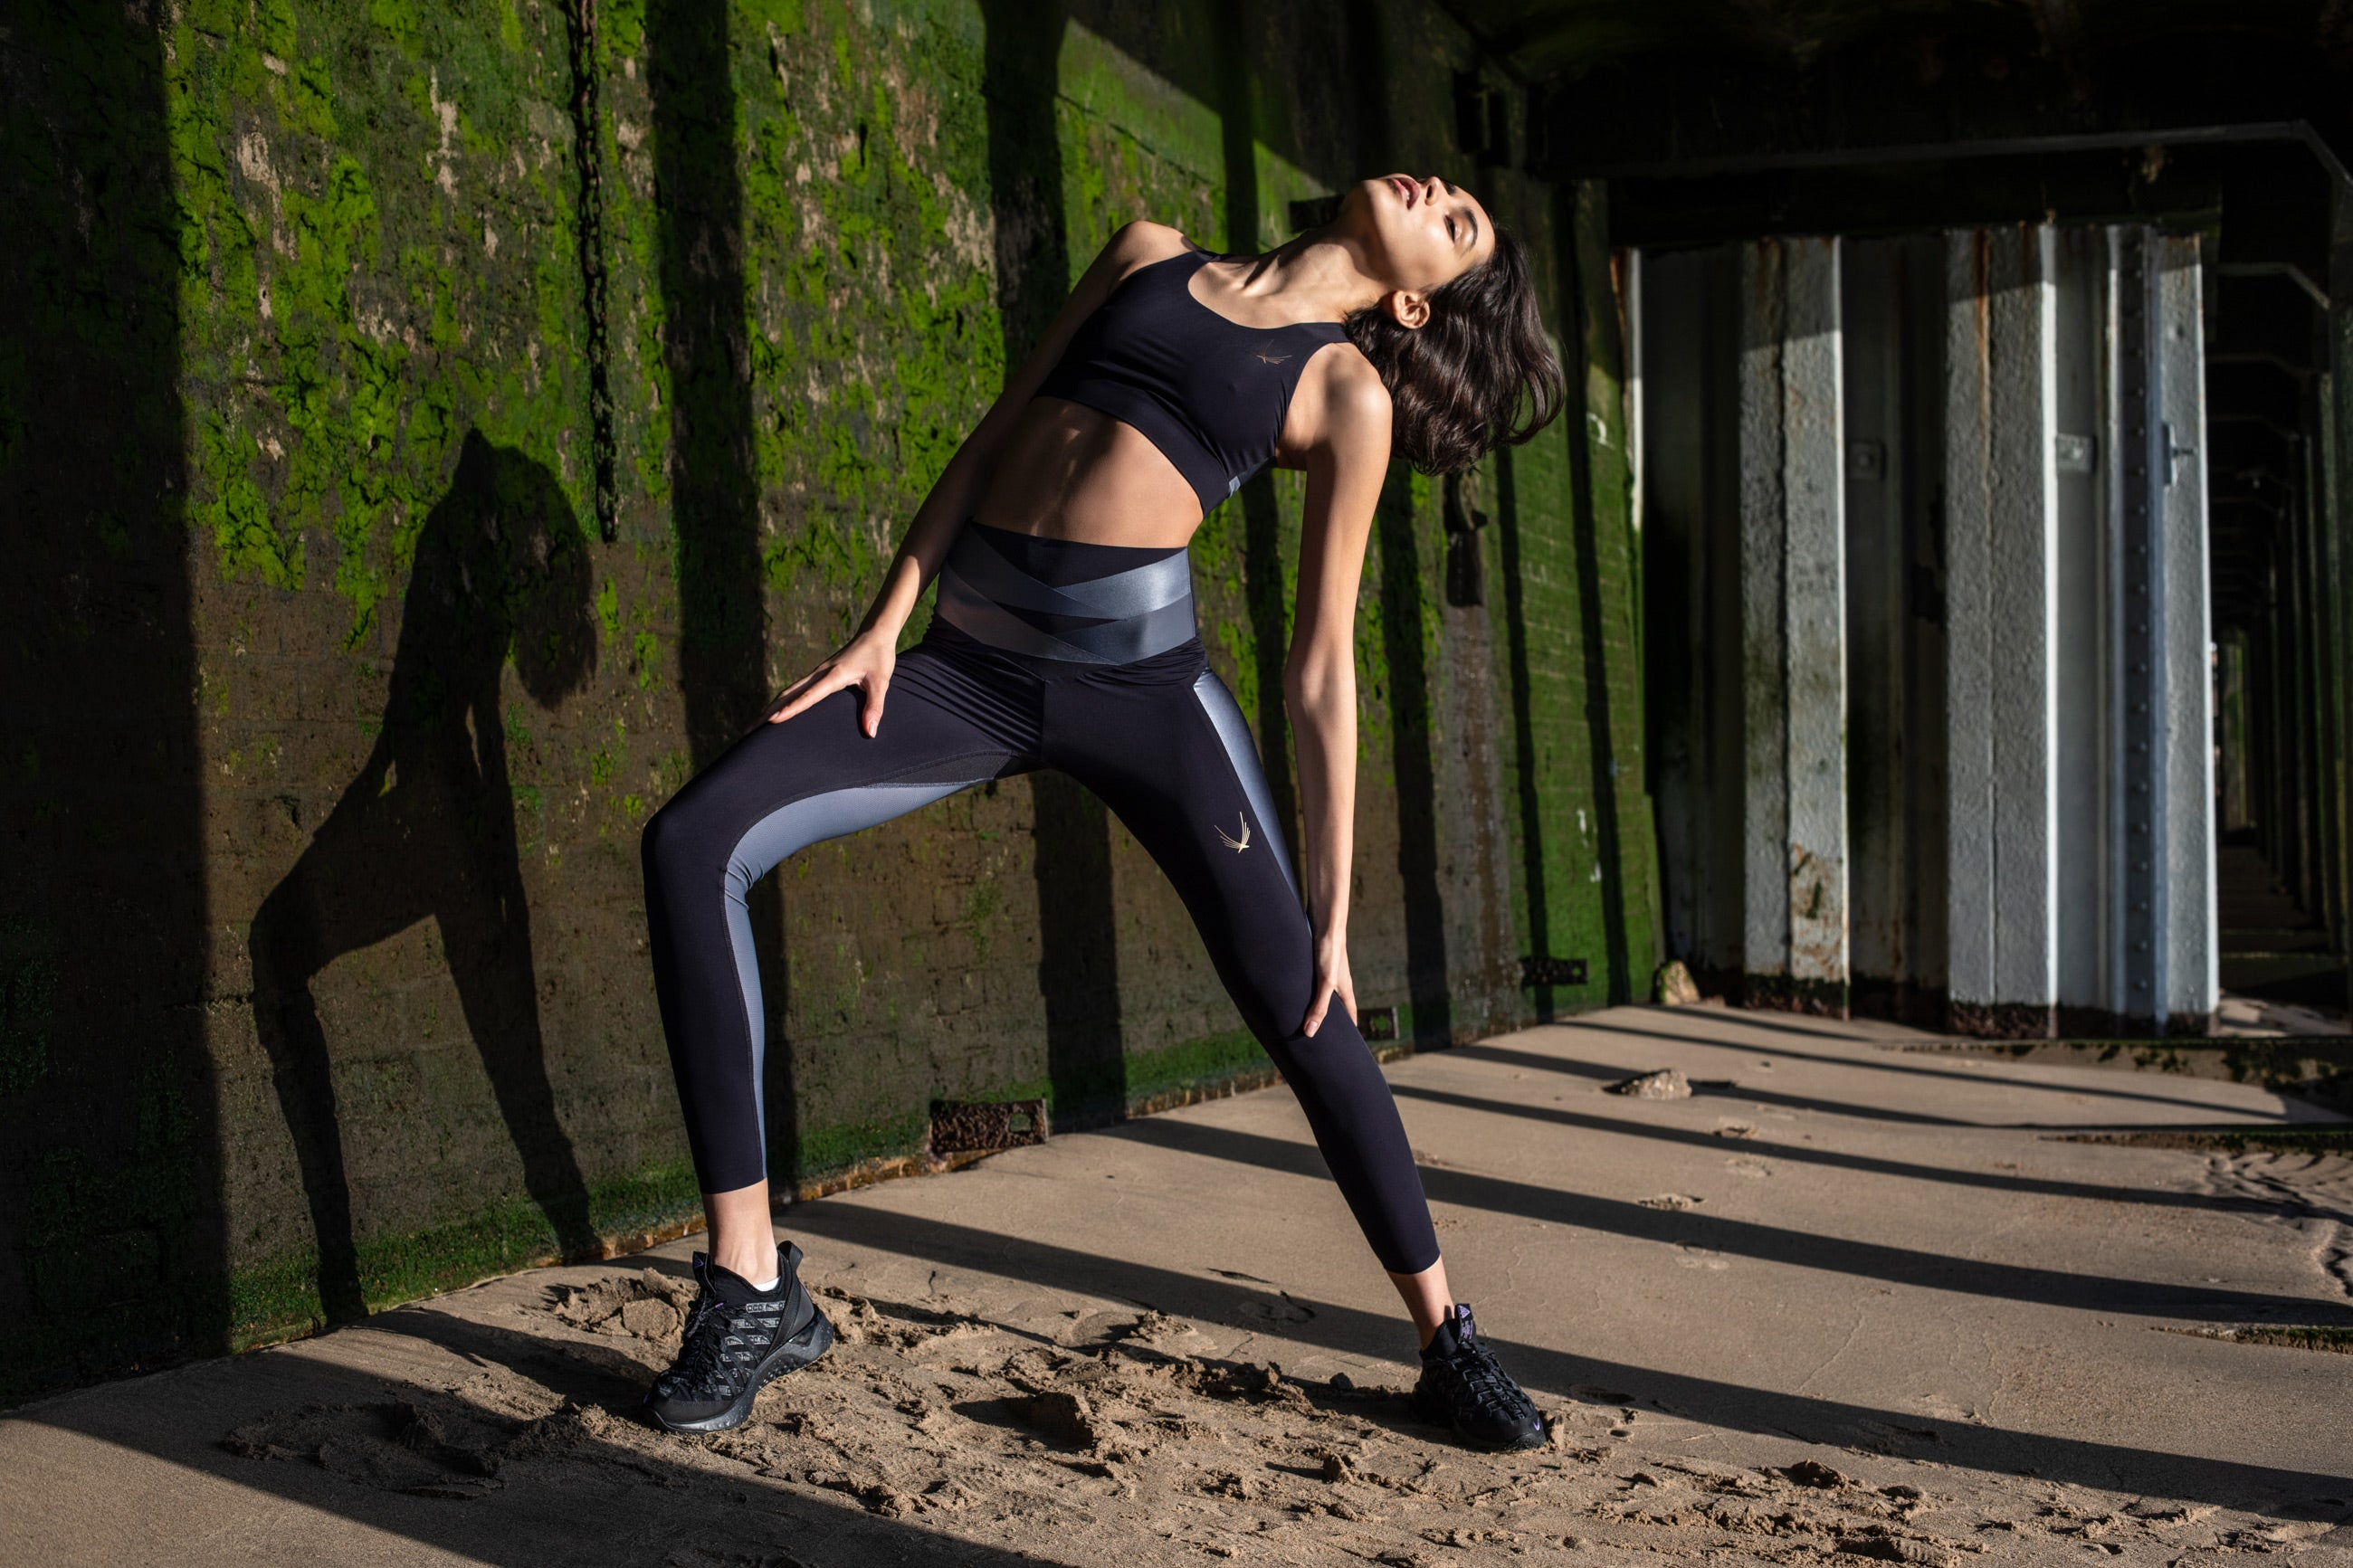 Axis Leggings & Sports Bra by Lucas Hugh